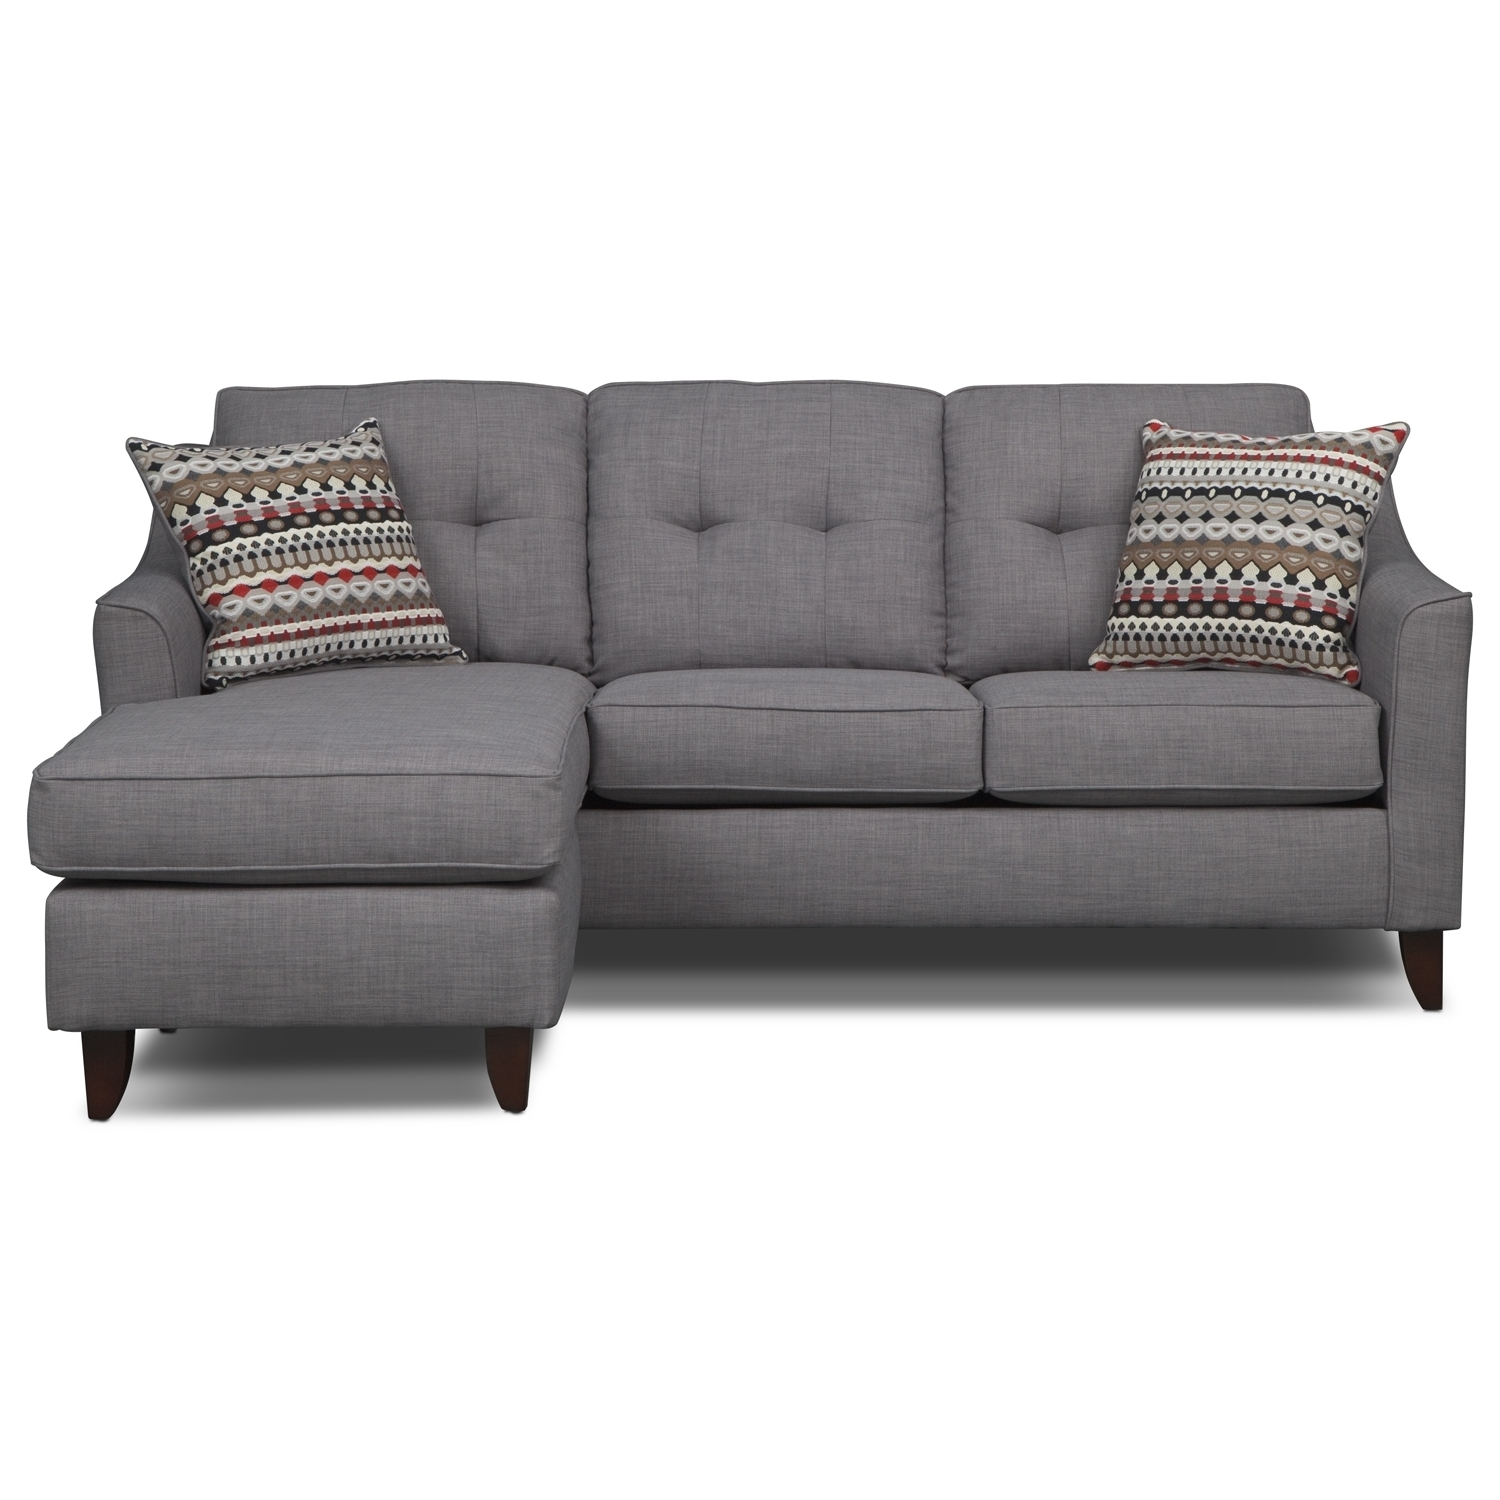 Famous Sofa: Unique Cheap Chaise Sofa Cheap Chaise Lounge, Couches Ikea With Regard To Gray Couches With Chaise (View 5 of 15)